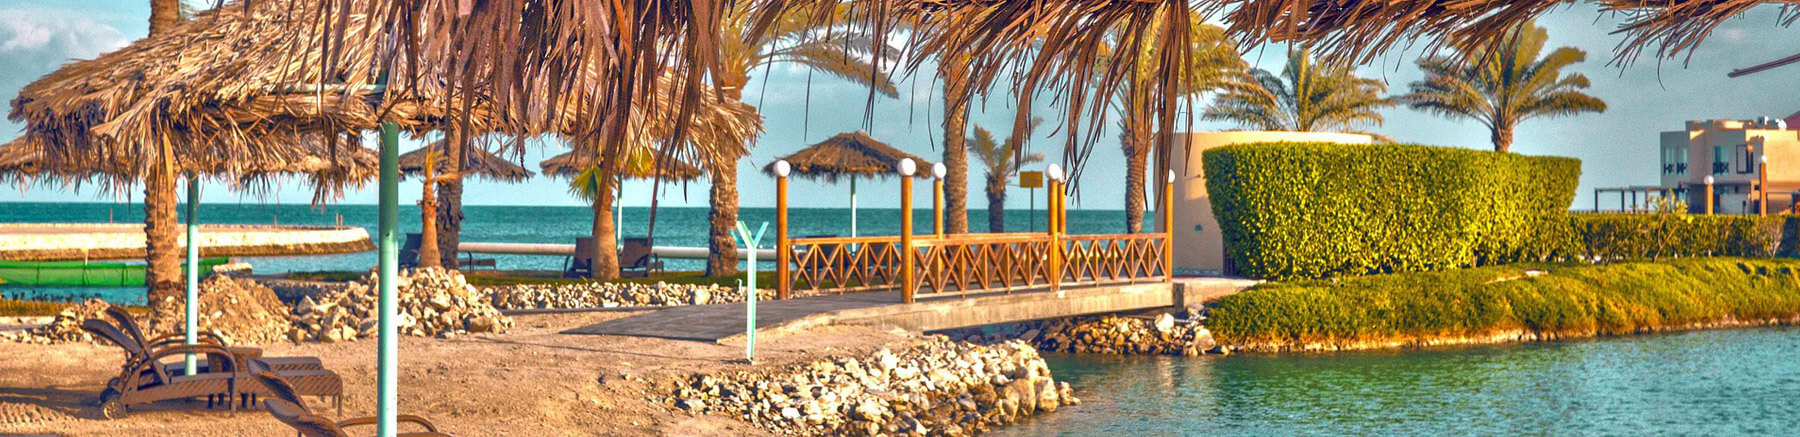 Strand met ligstoel in Al Bandar Resort in Bahrein